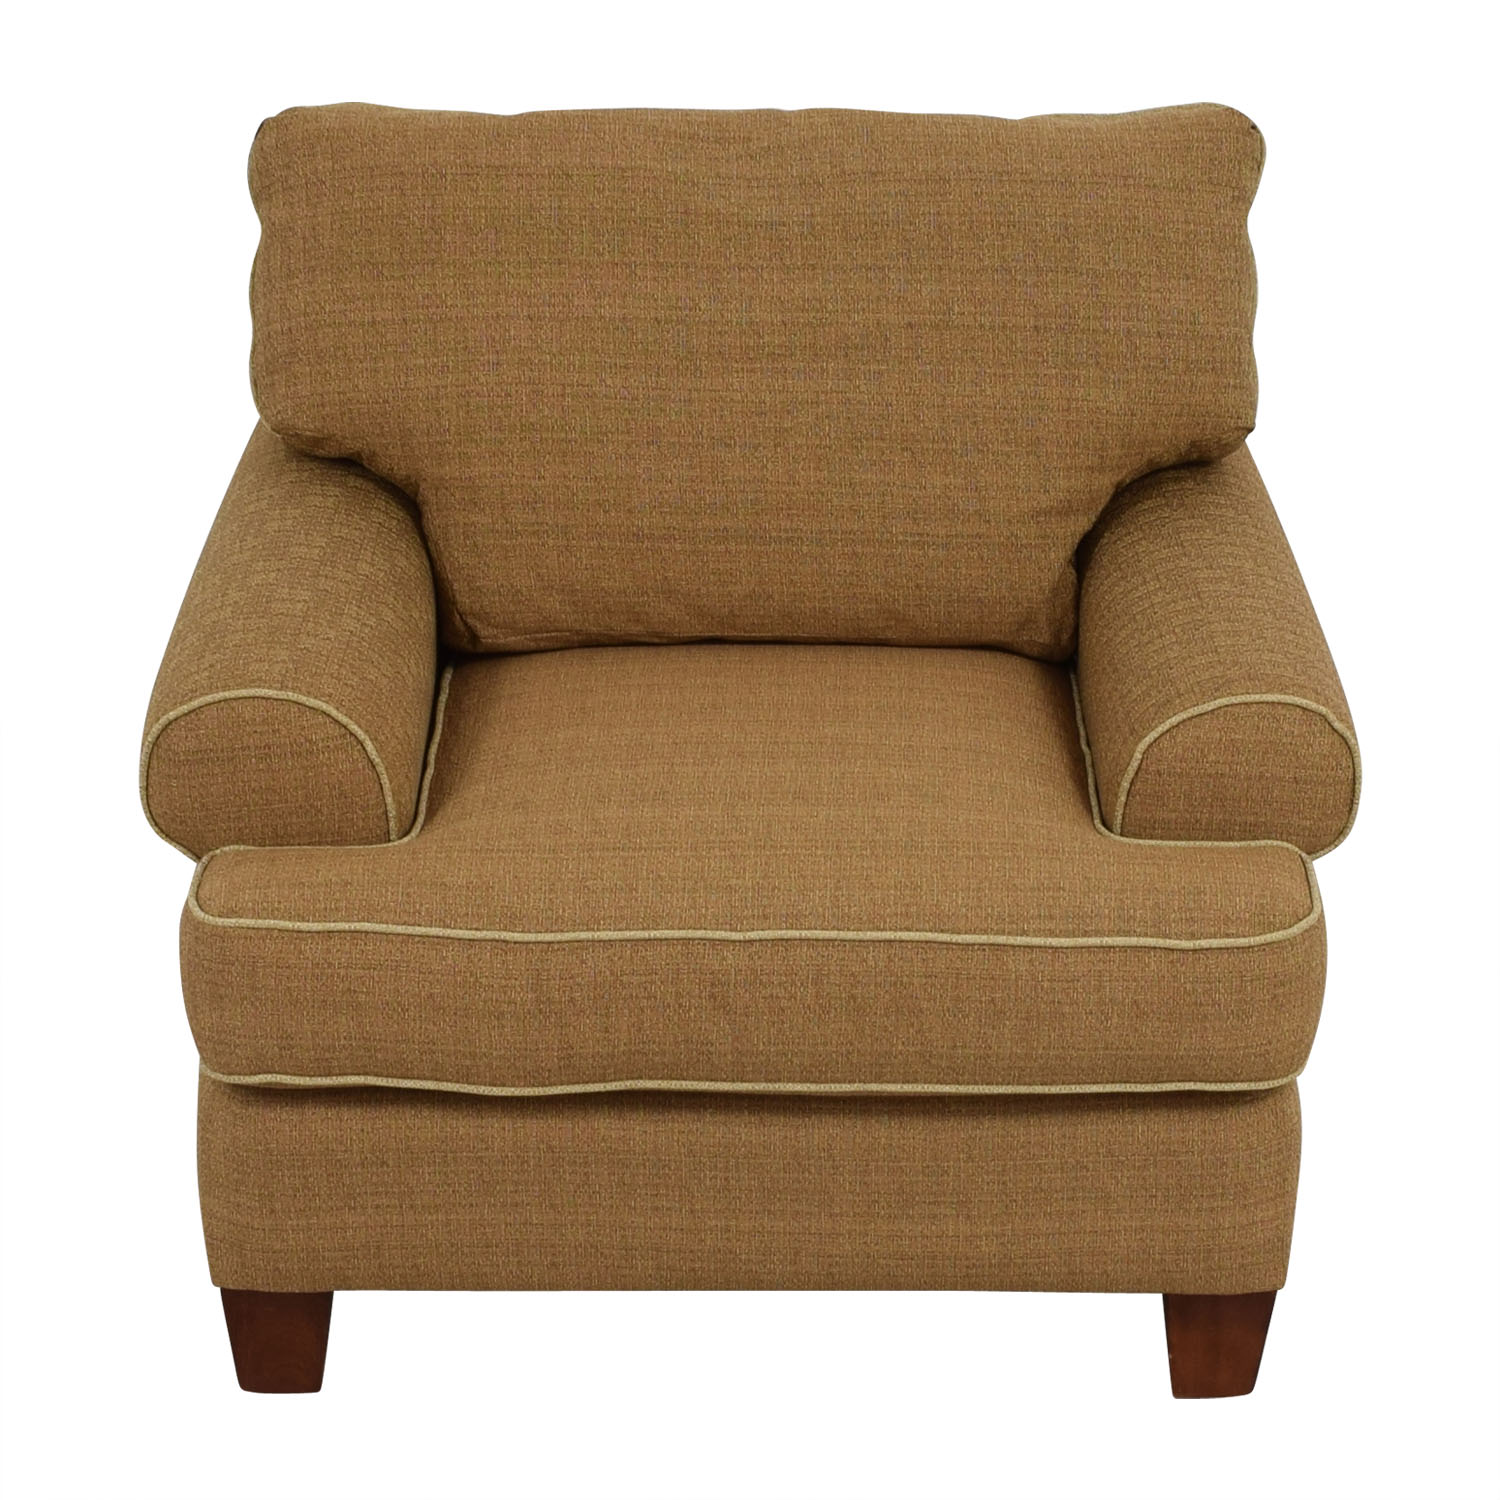 Braxton Culler Braxton Culler Brown Upholstered Chair